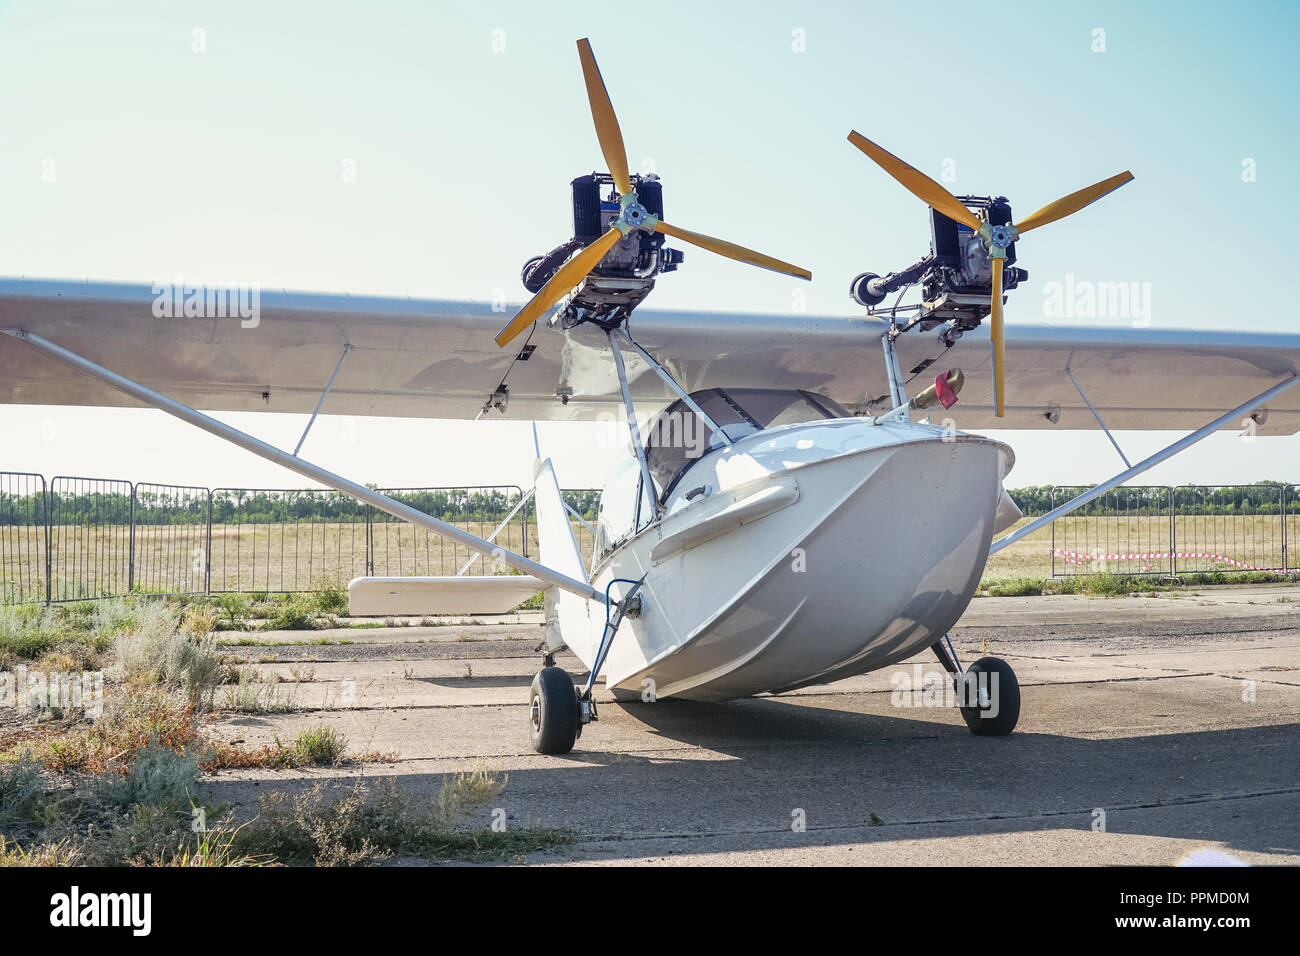 Light twin-engine amphibious aircraft at the airport - Stock Image